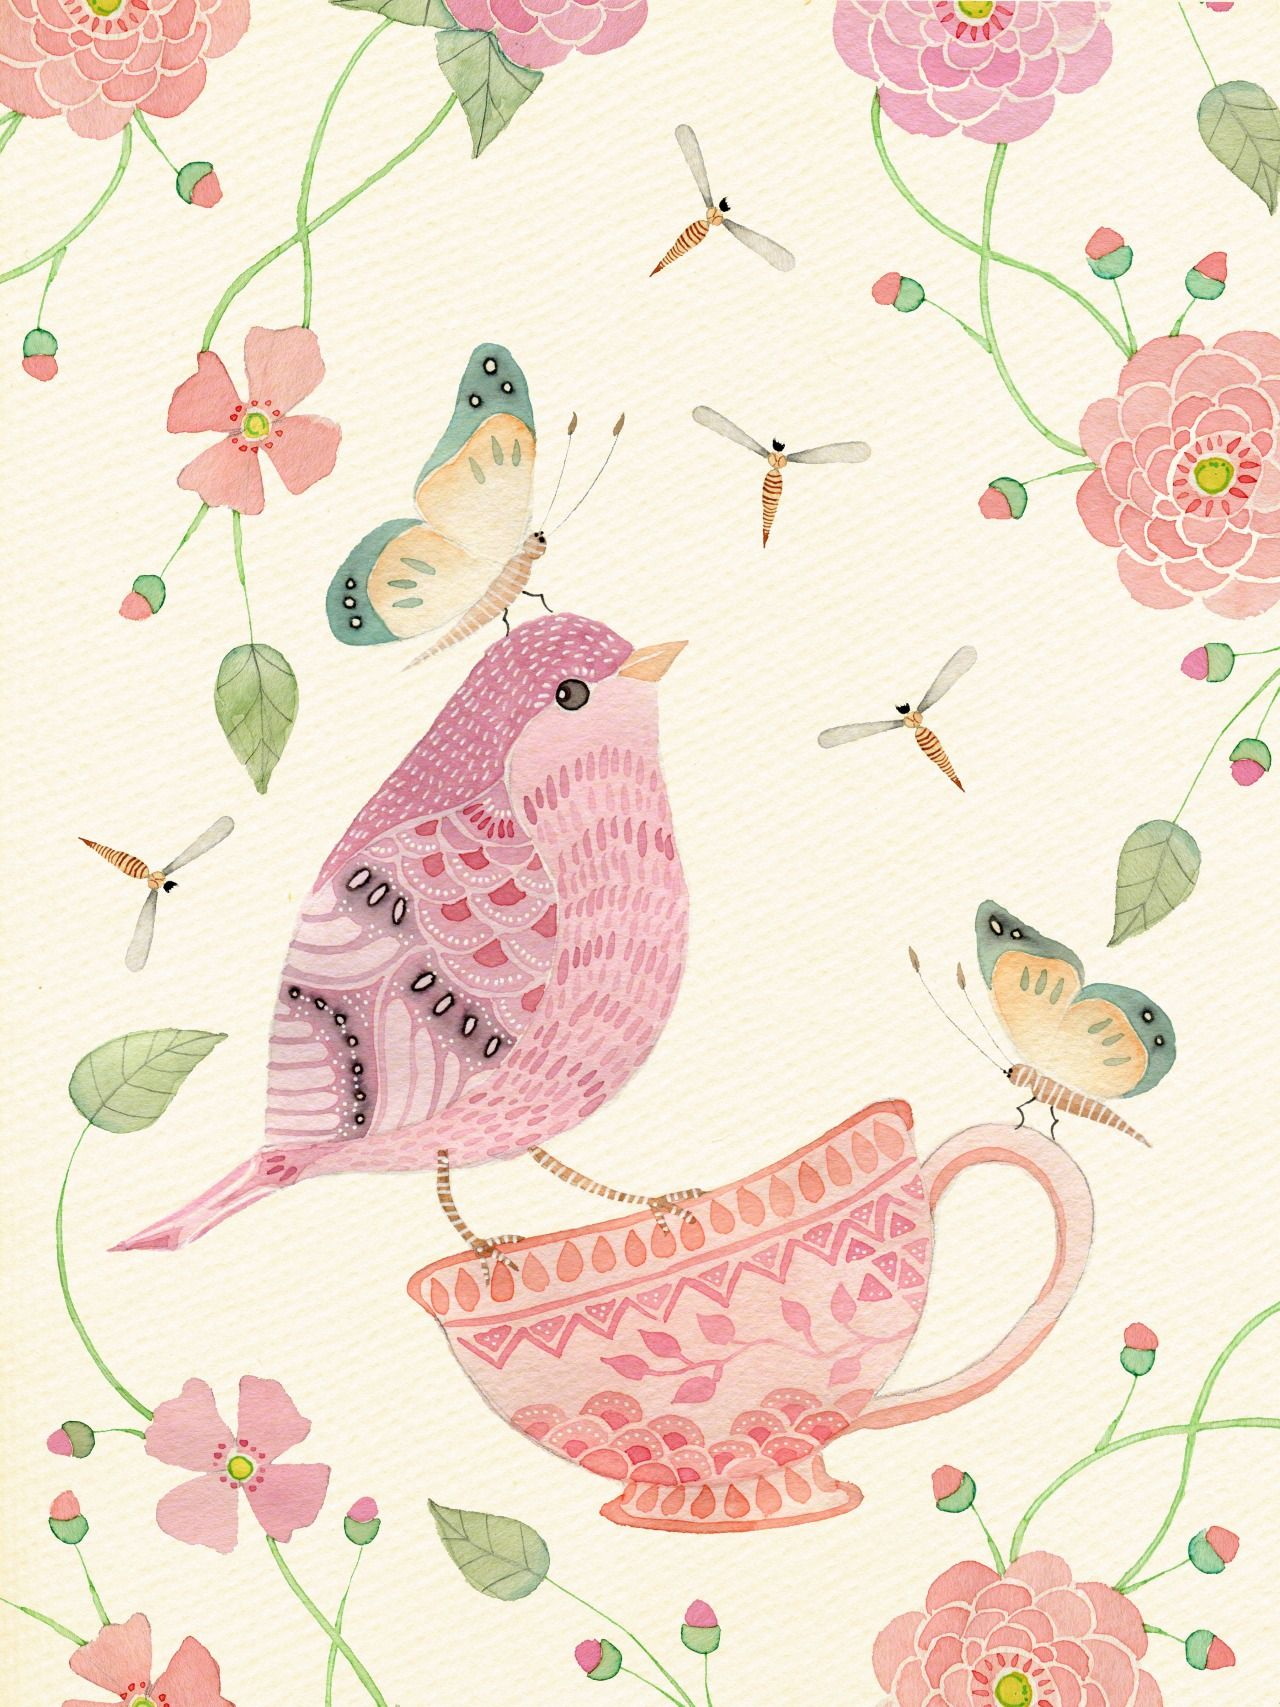 'Time for Tea!' by Colleen Parker